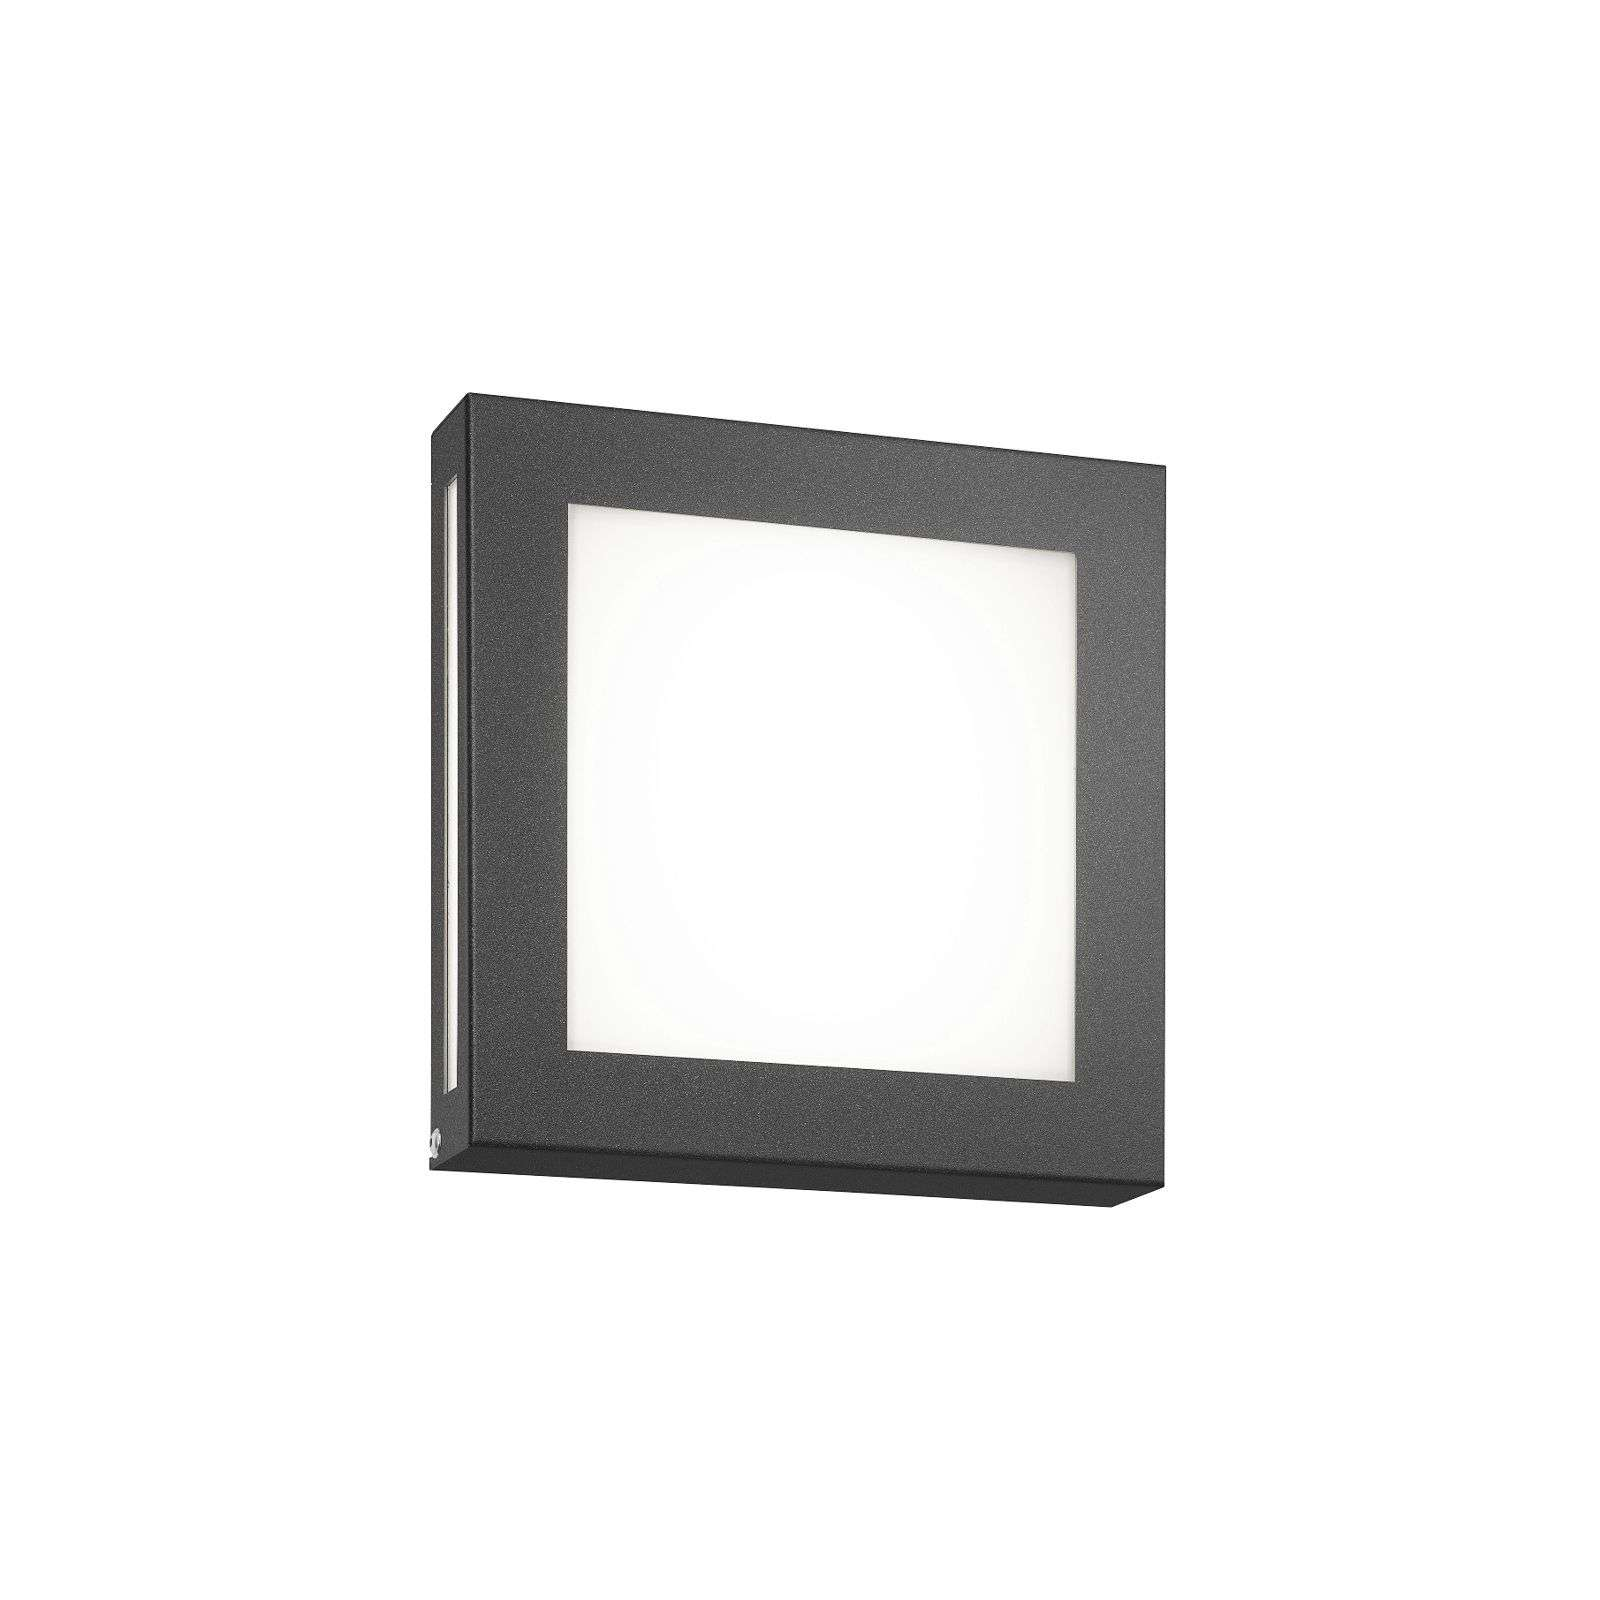 Aplique LED color antracita pared ext Legendo Mini